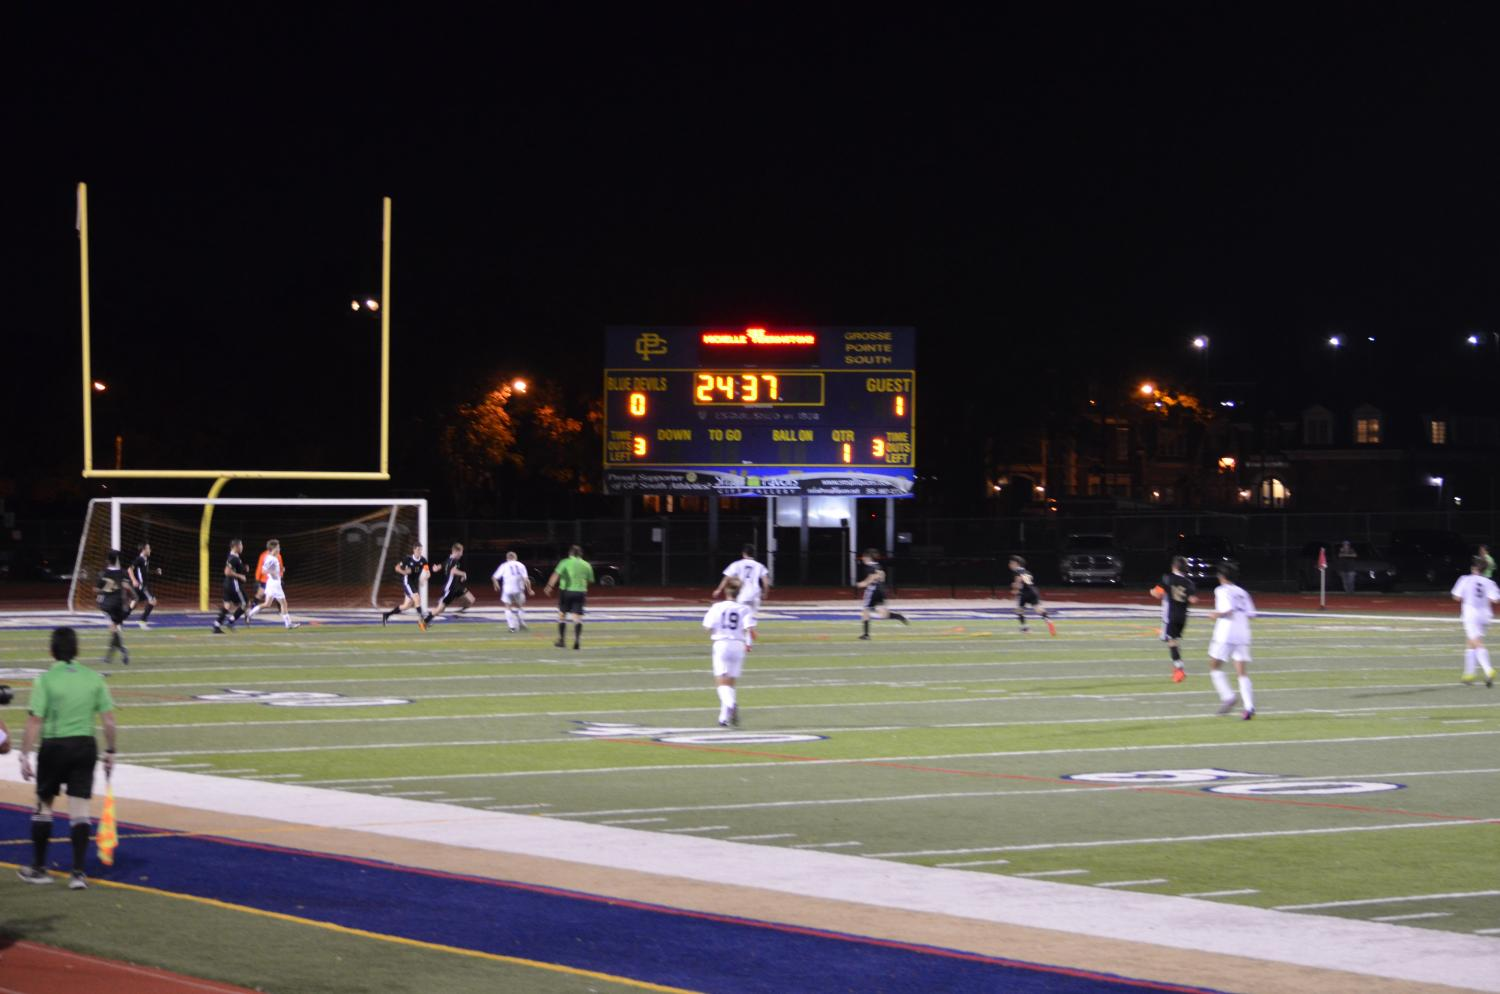 Grosse Pointe South played North at the Veterans Game on October 11. The Norsemen won 4-1.